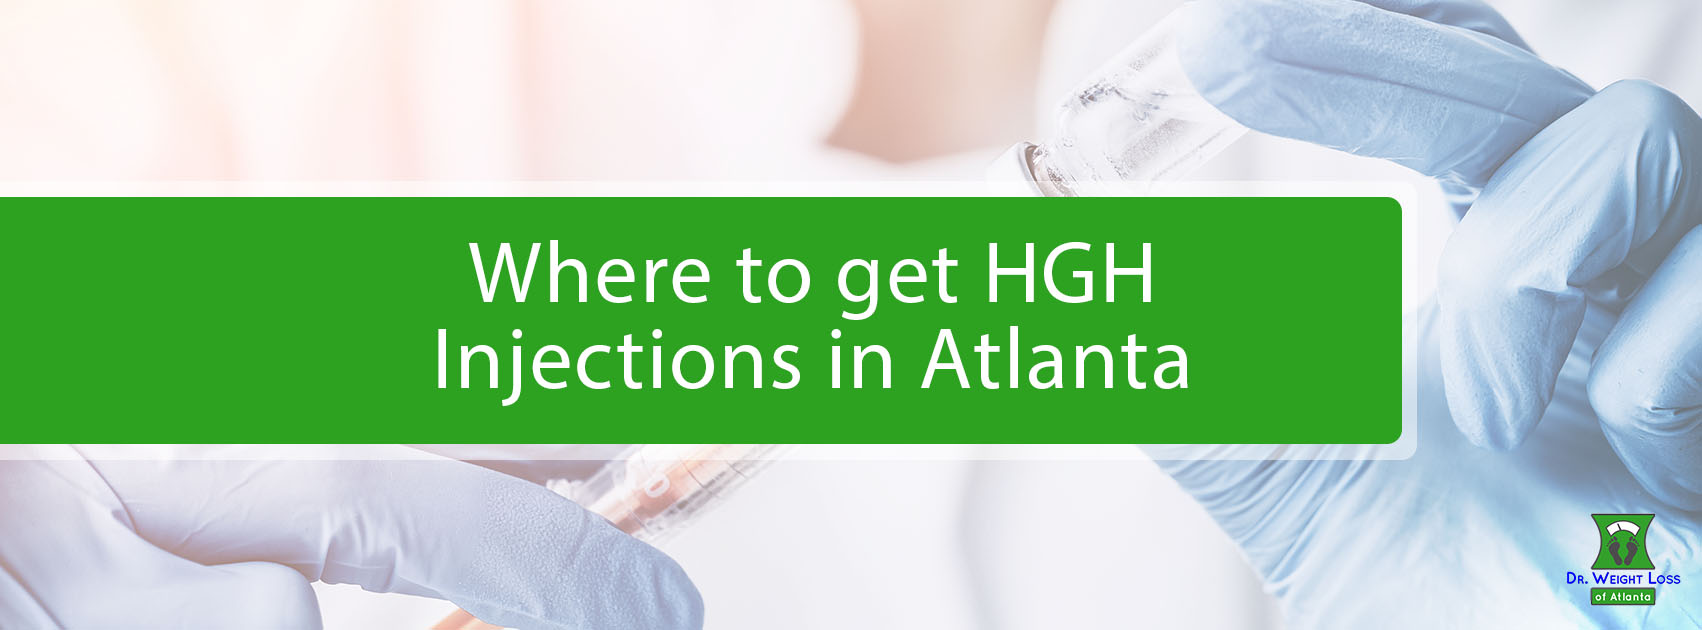 Where to get HGH Injections in Atlanta | Dr. Weight Loss ...